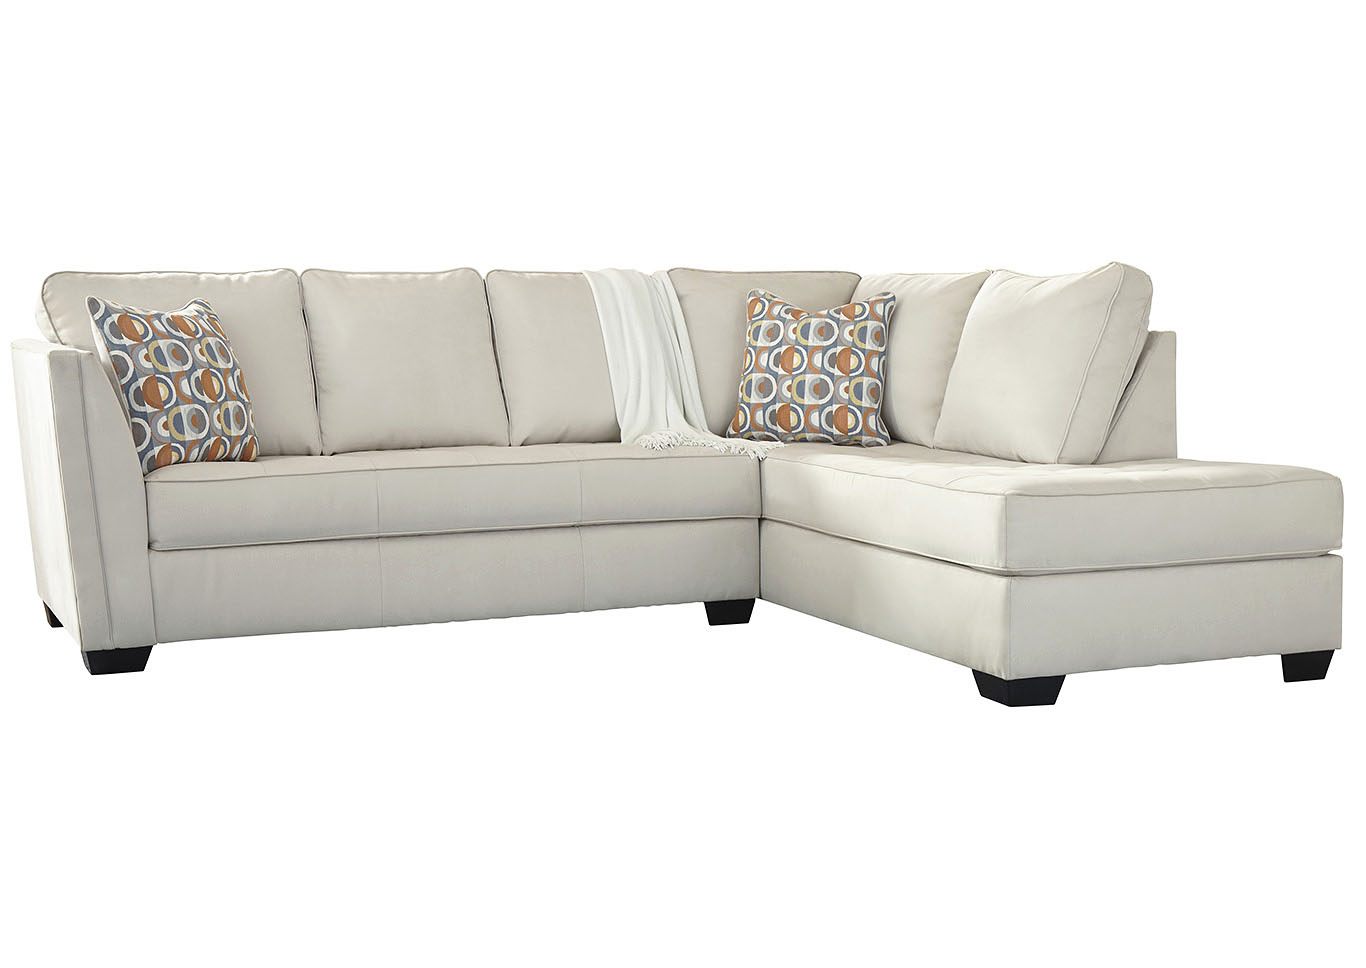 Filone Ivory LAF Sofa Chaise,Signature Design By Ashley